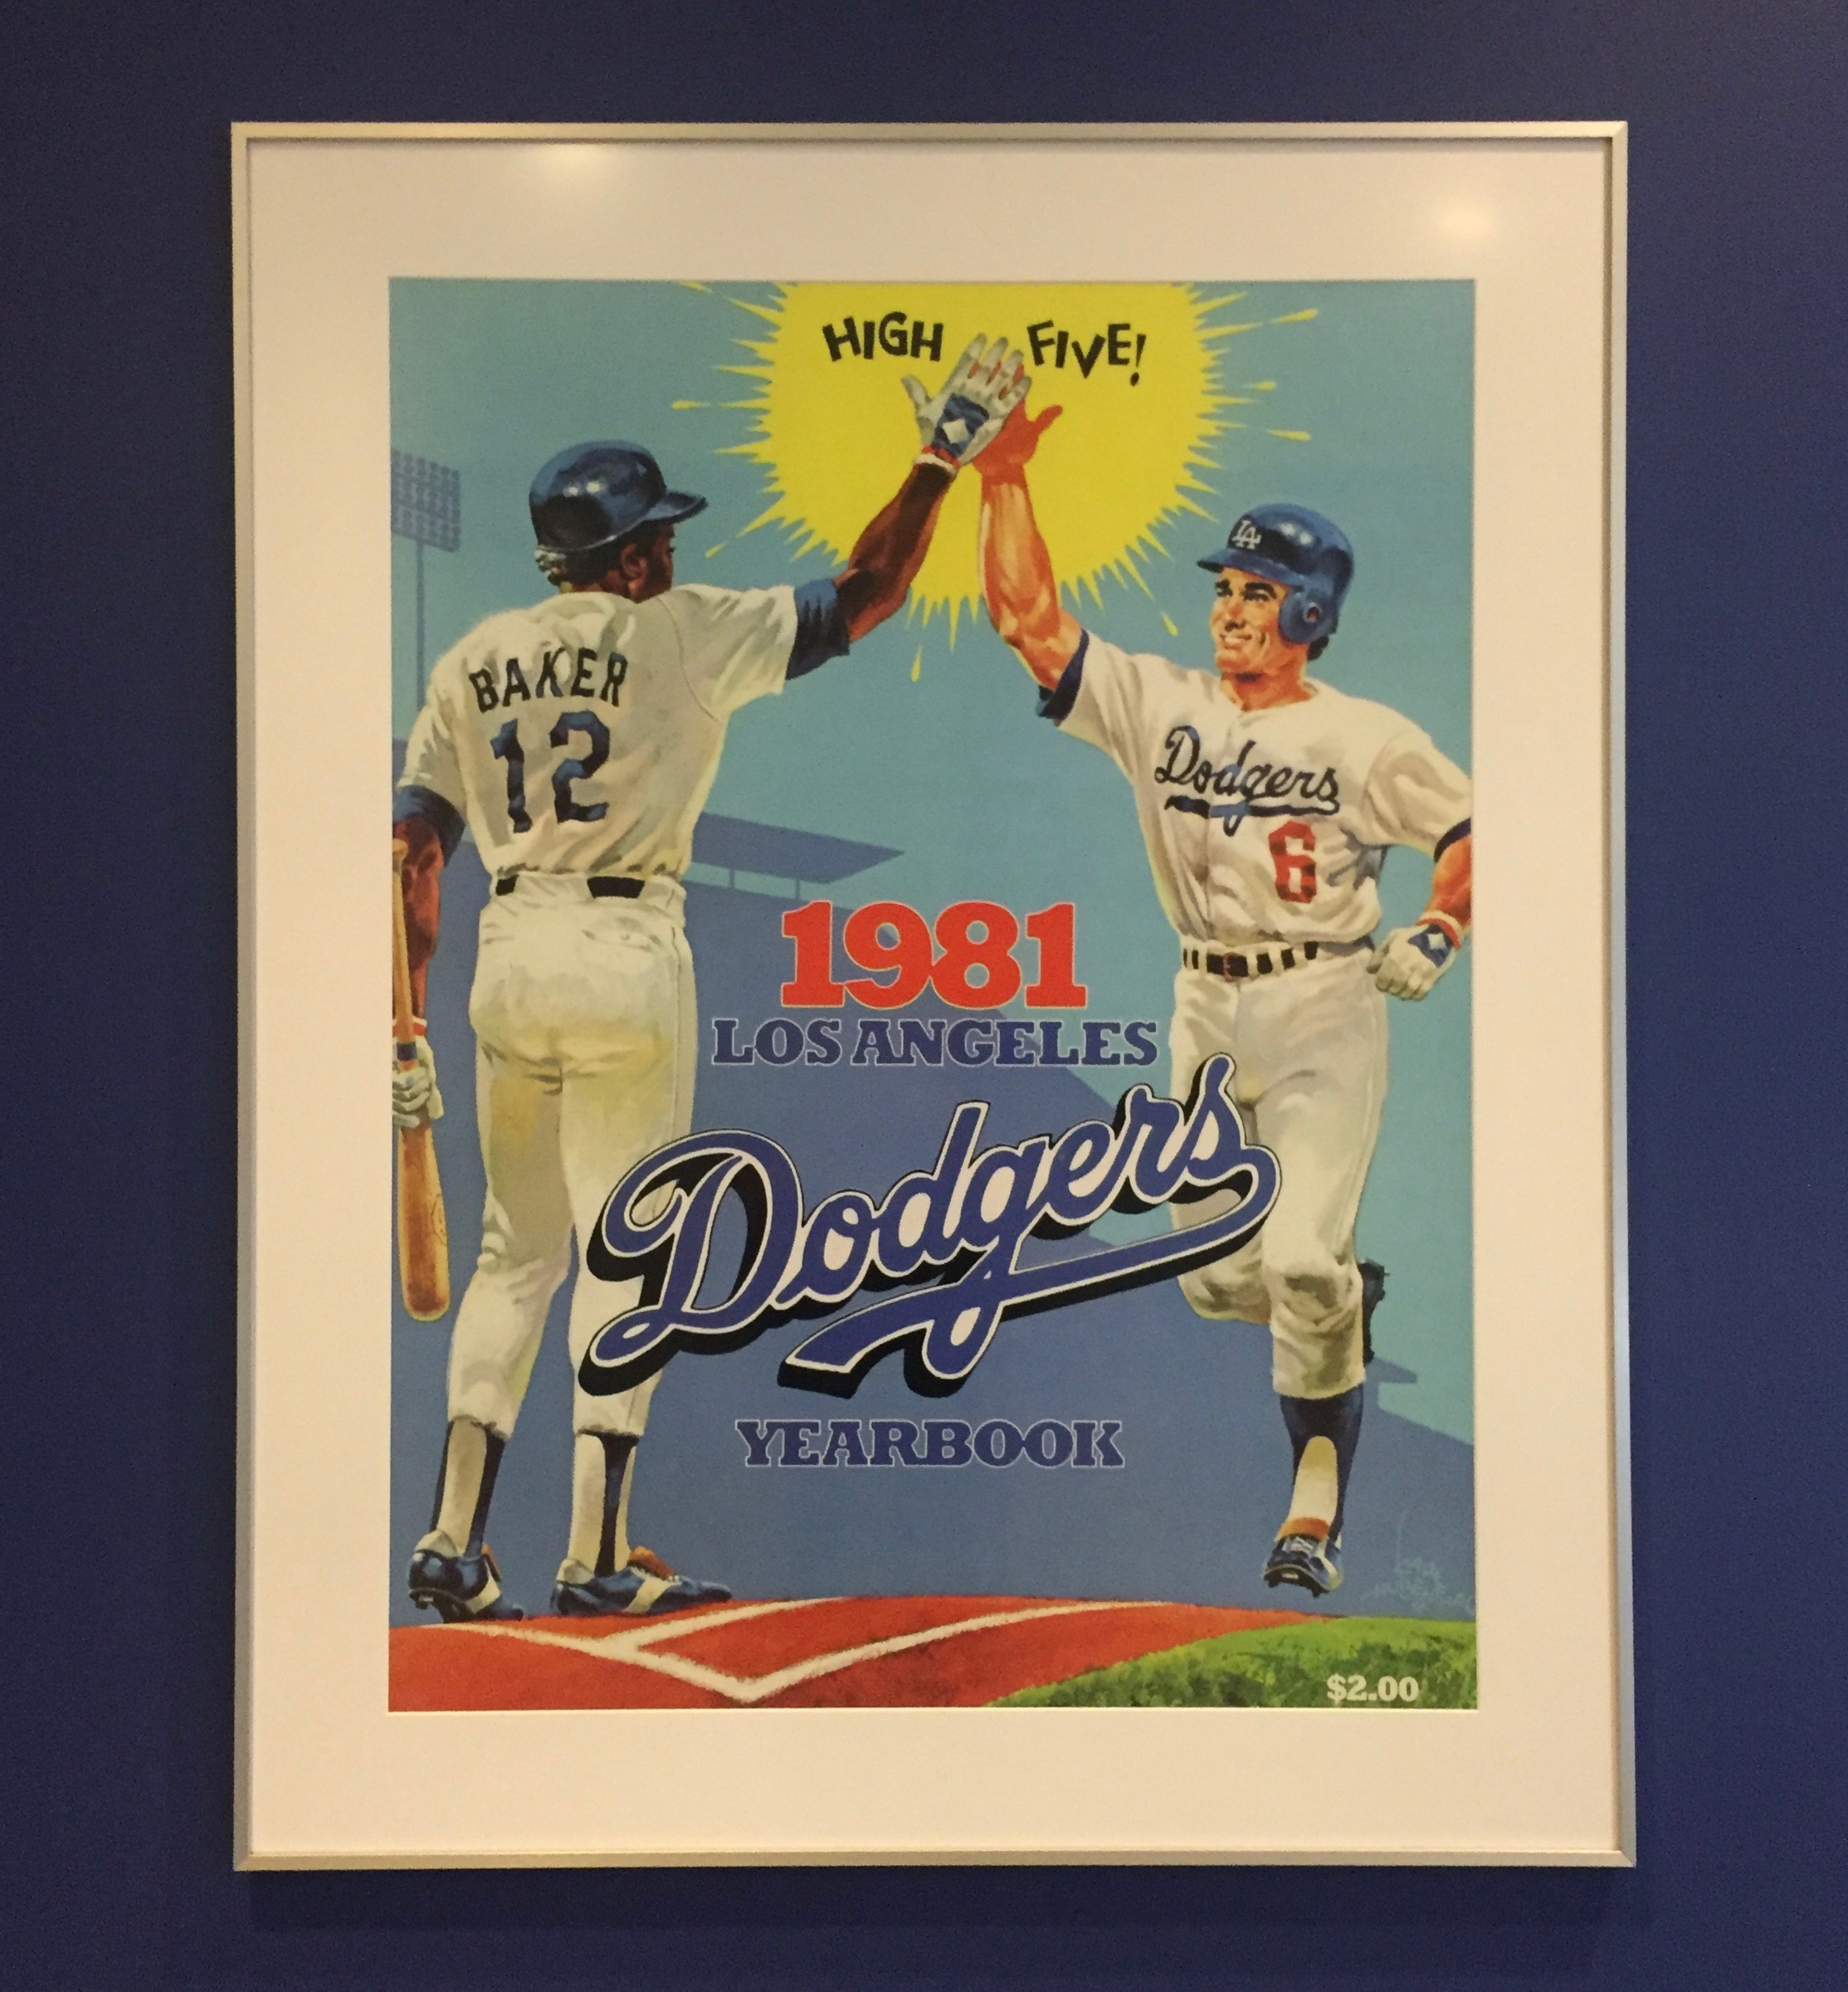 1981 Dodgers Yearbook